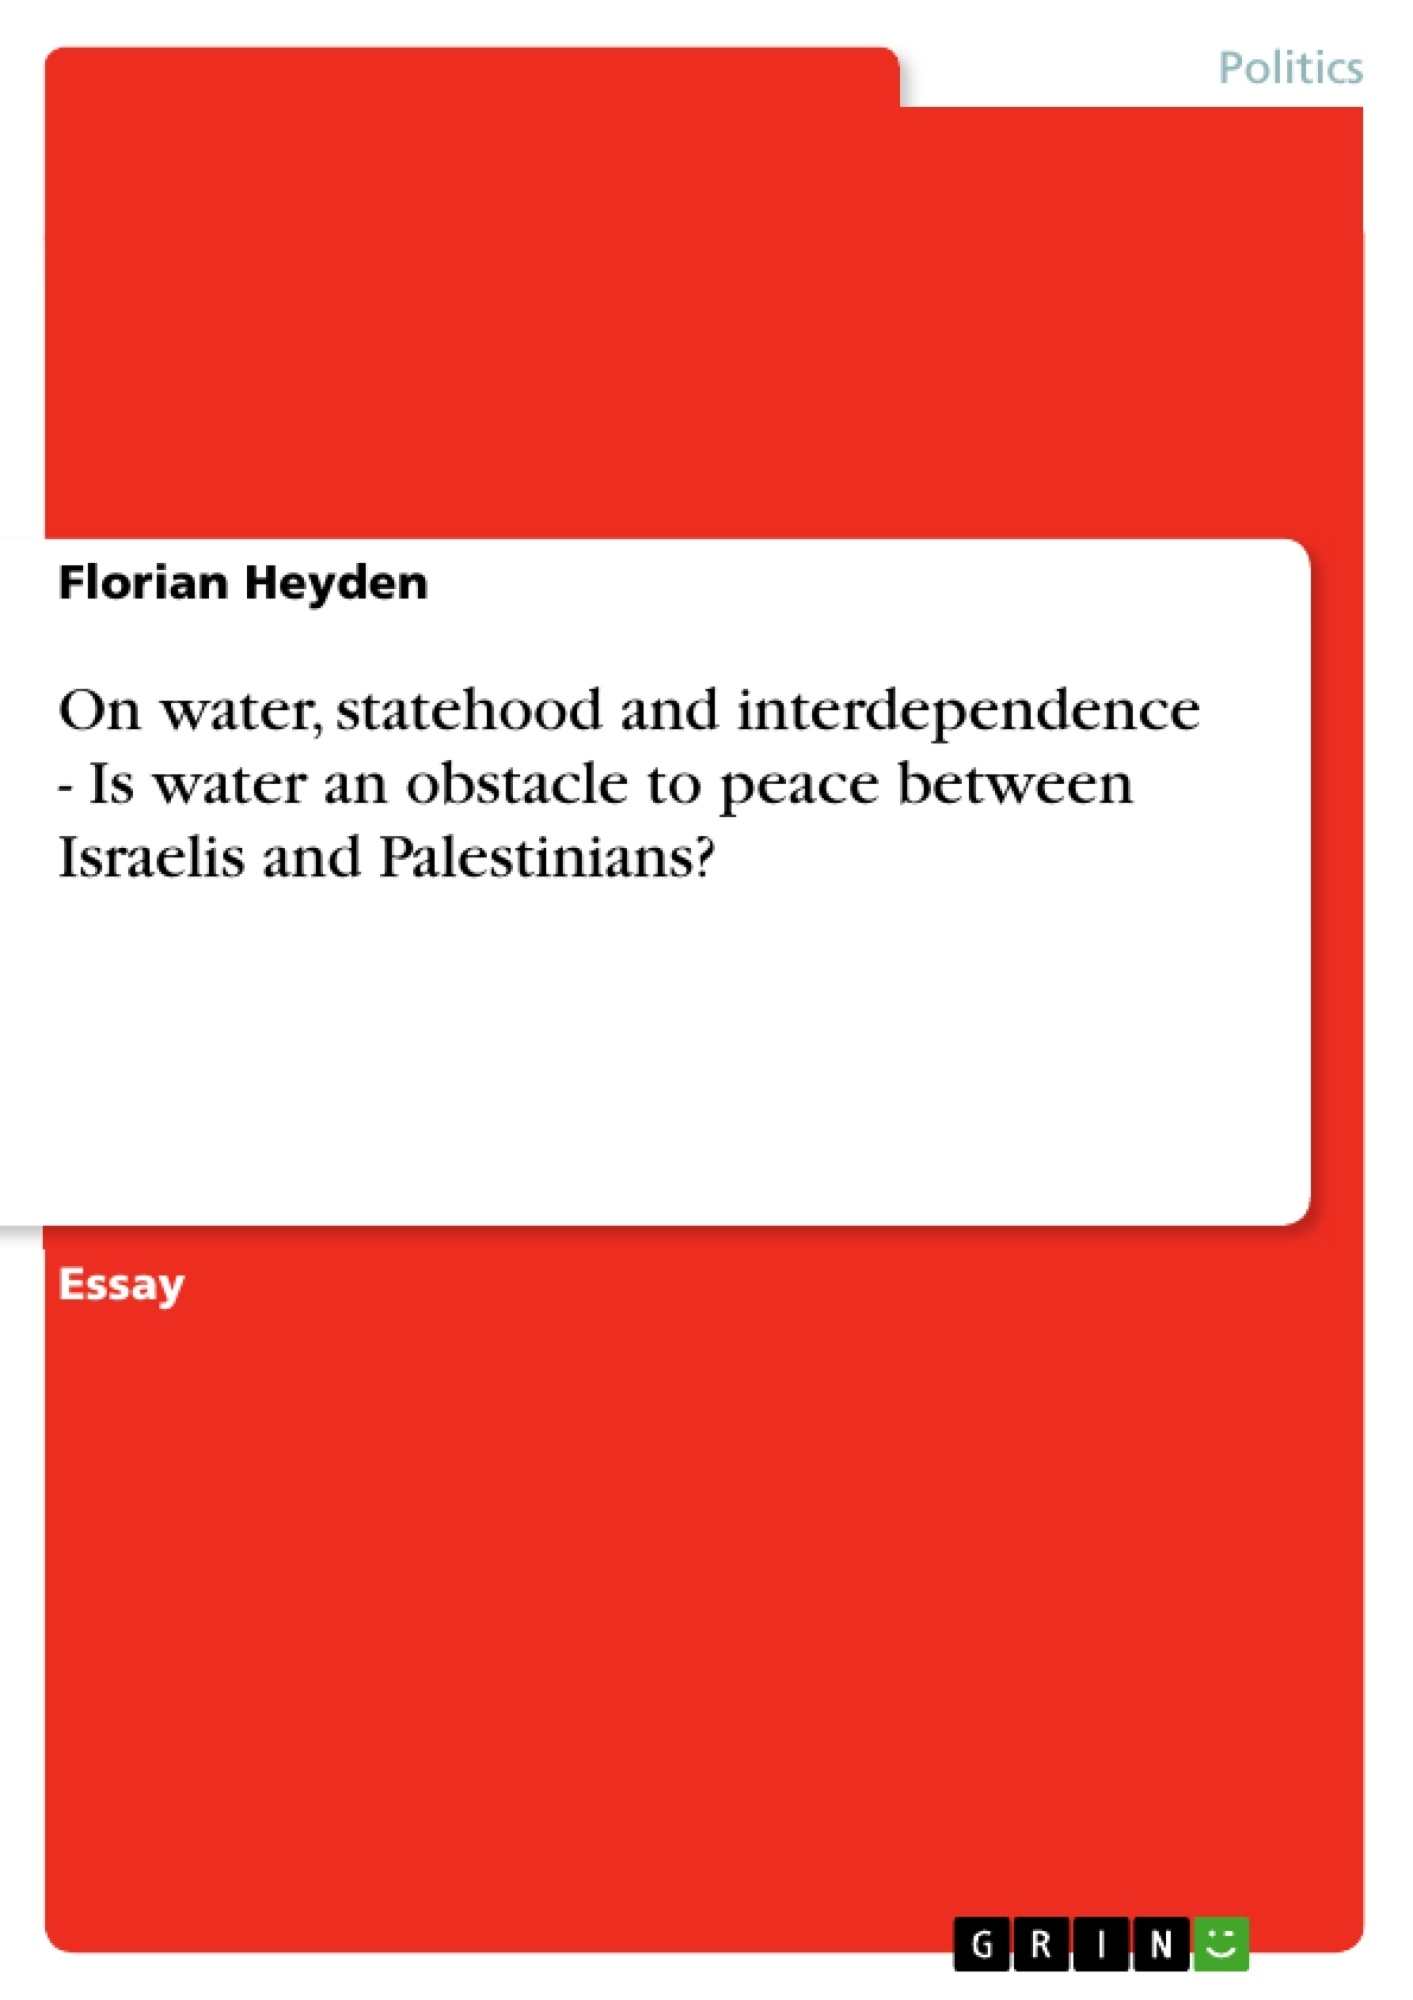 Title: On water, statehood and interdependence - Is water an obstacle to peace between Israelis and Palestinians?